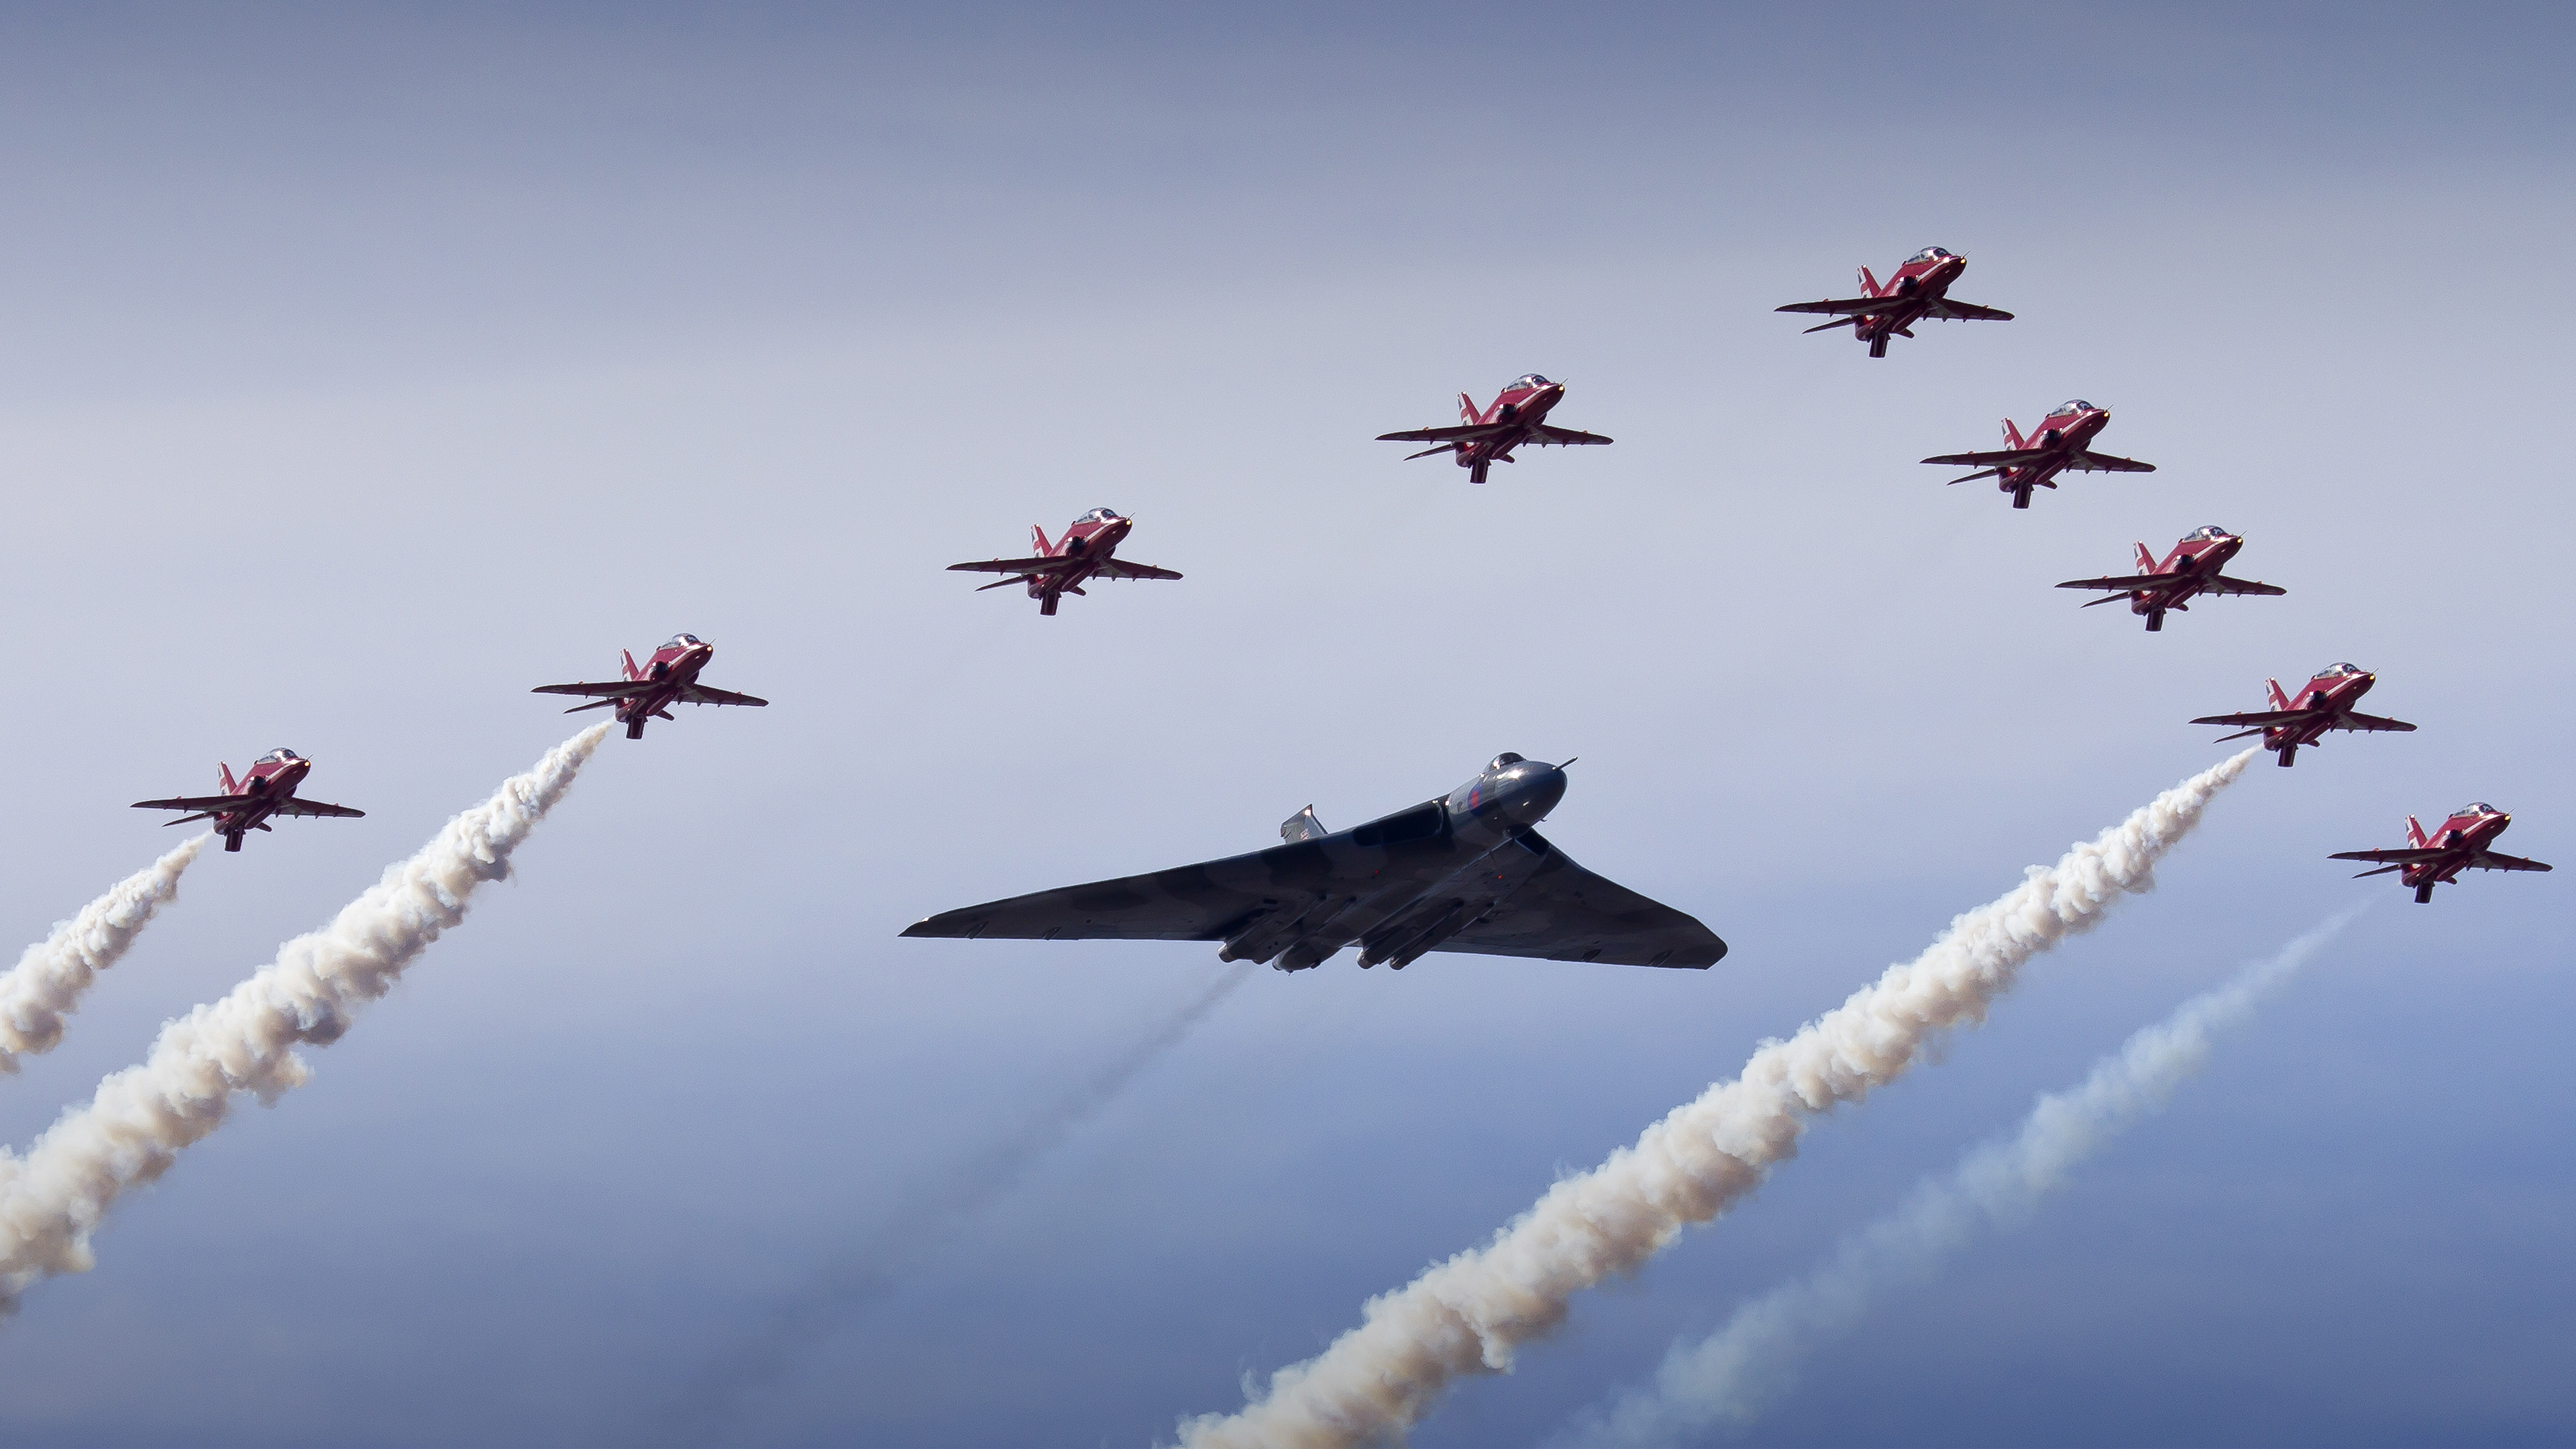 Vulcan Bomber Red Arrows 4K8953415808 - Vulcan Bomber Red Arrows 4K - Vulcan, Sukhoi, red, Bomber, Arrows